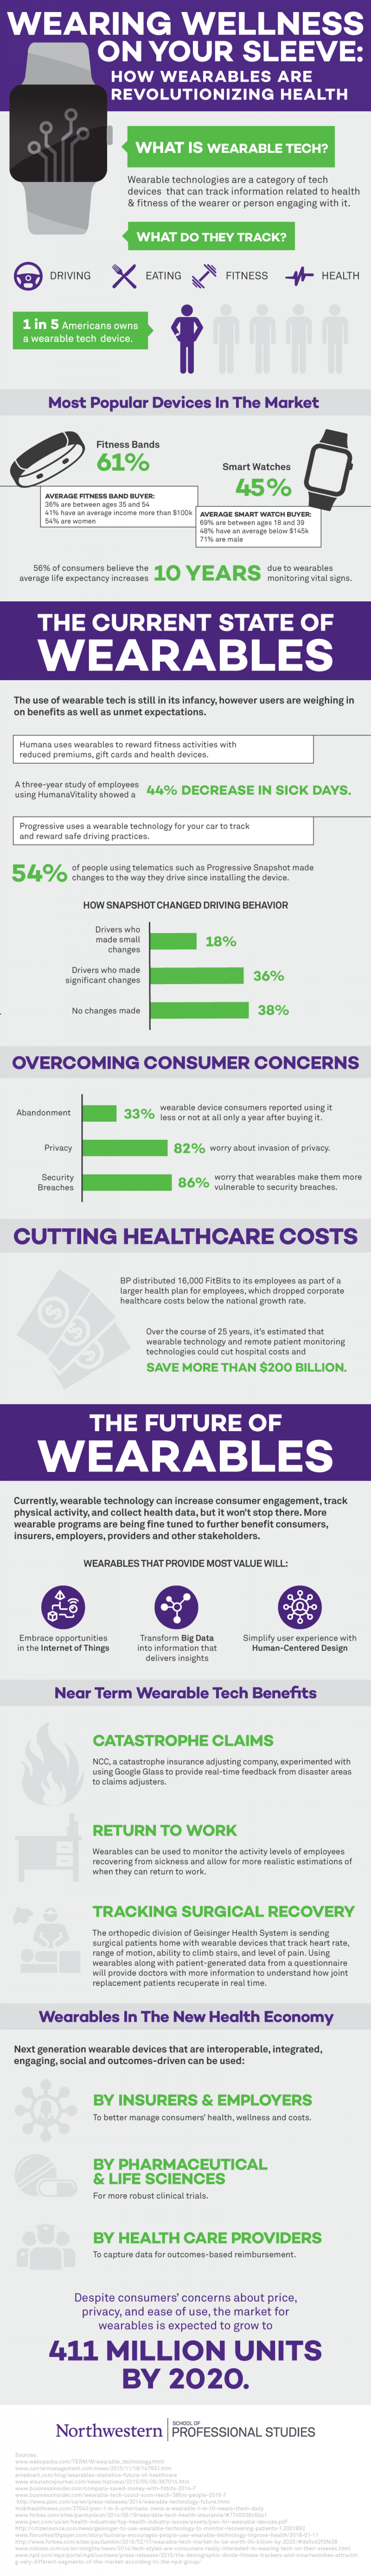 How Wearable Tech Is Changing Health Care Services Infographic